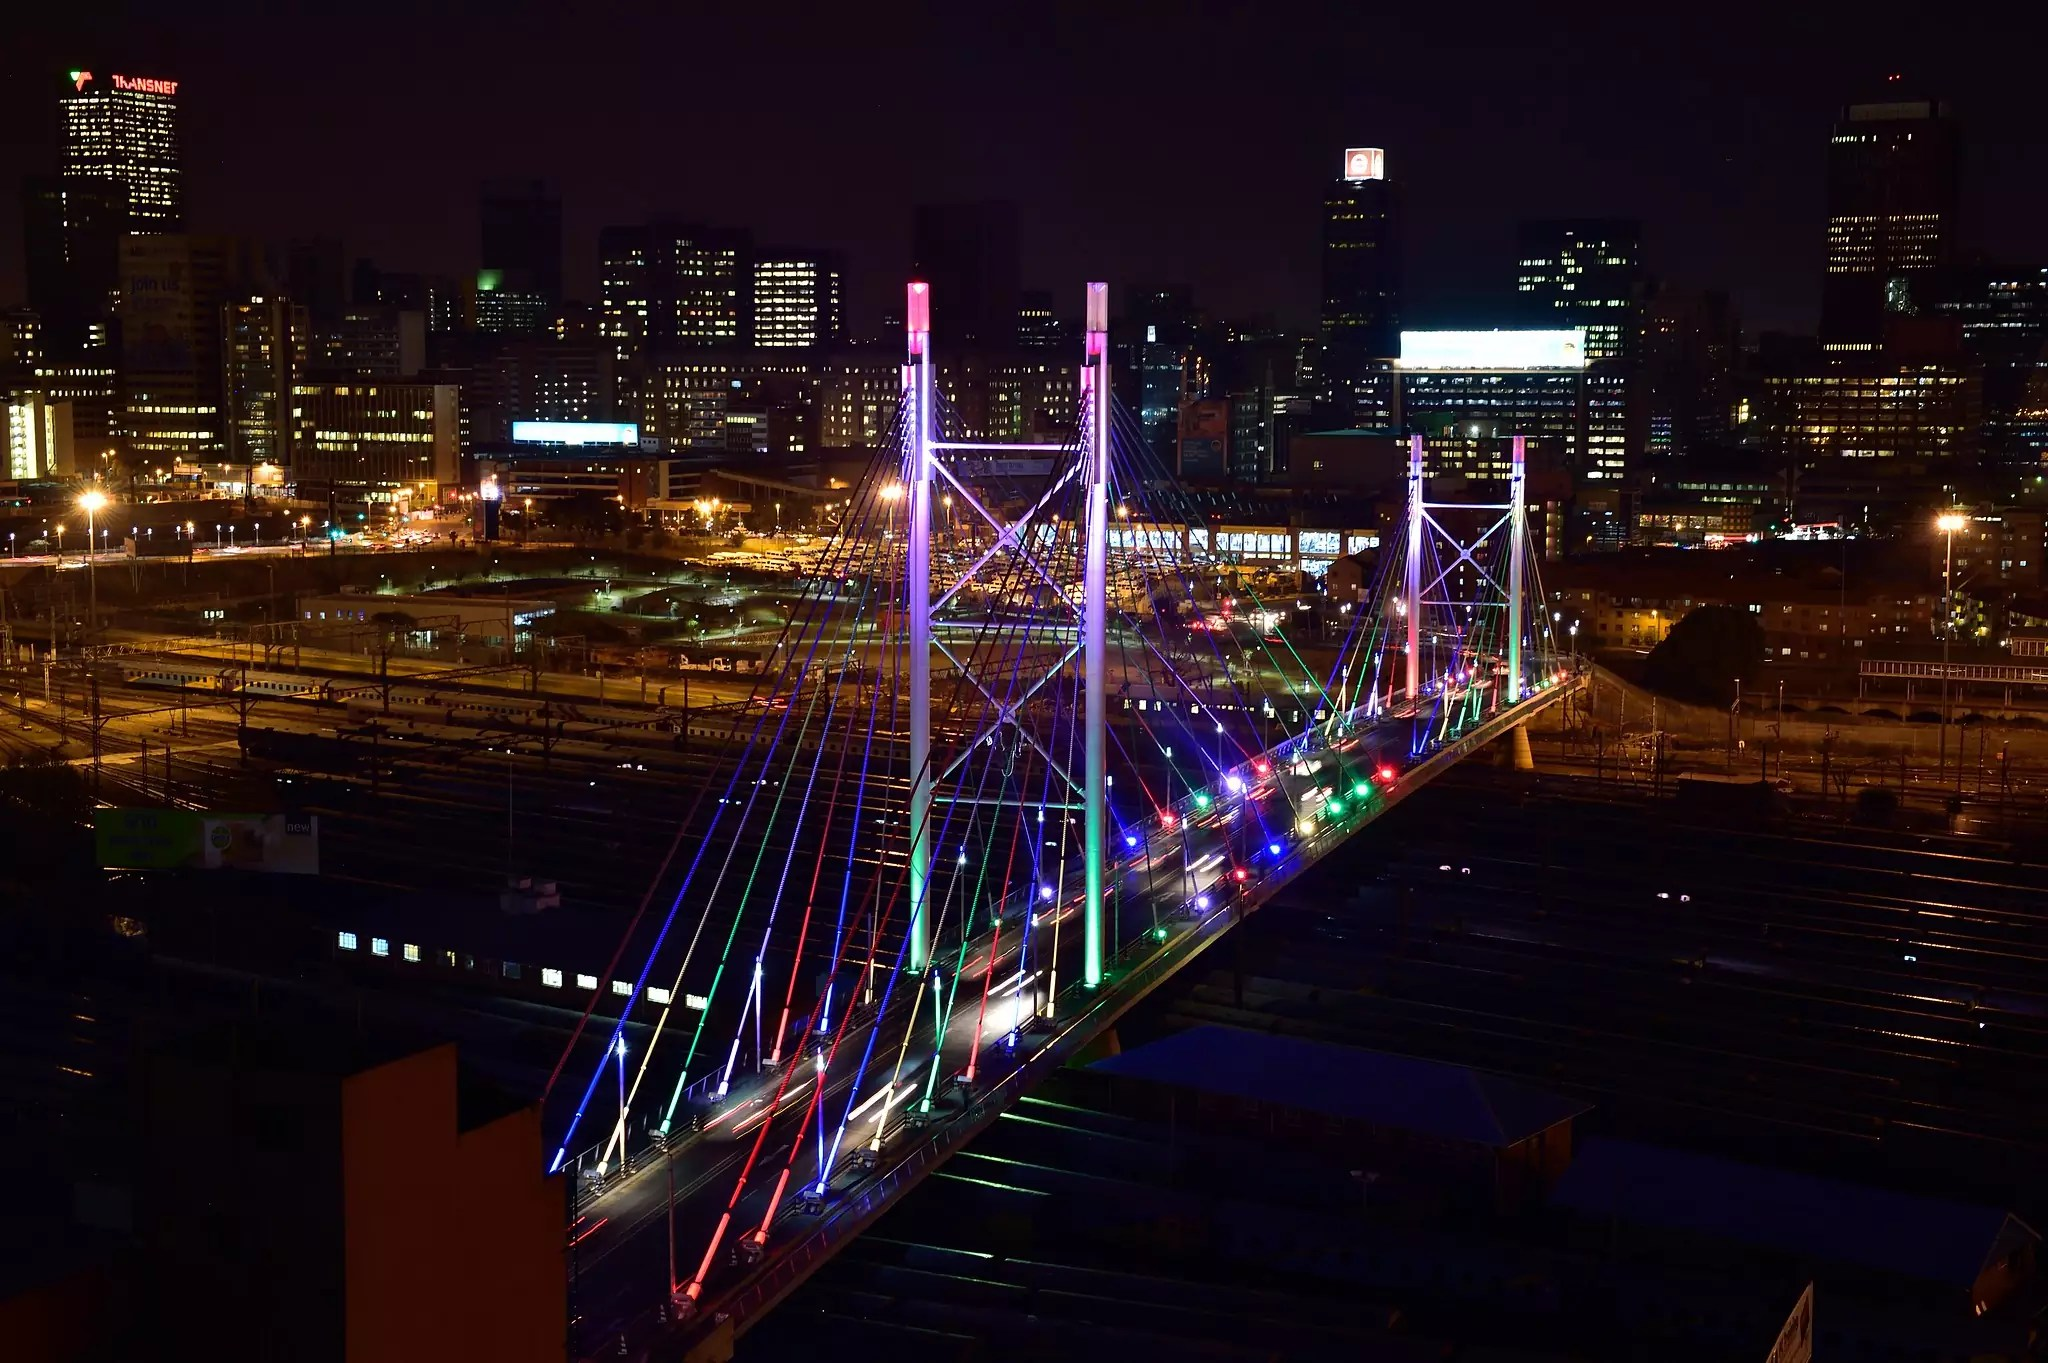 Mandela Bridge in Johannesburg, South Africa - photo by South African Tourism under CC BY 2.0